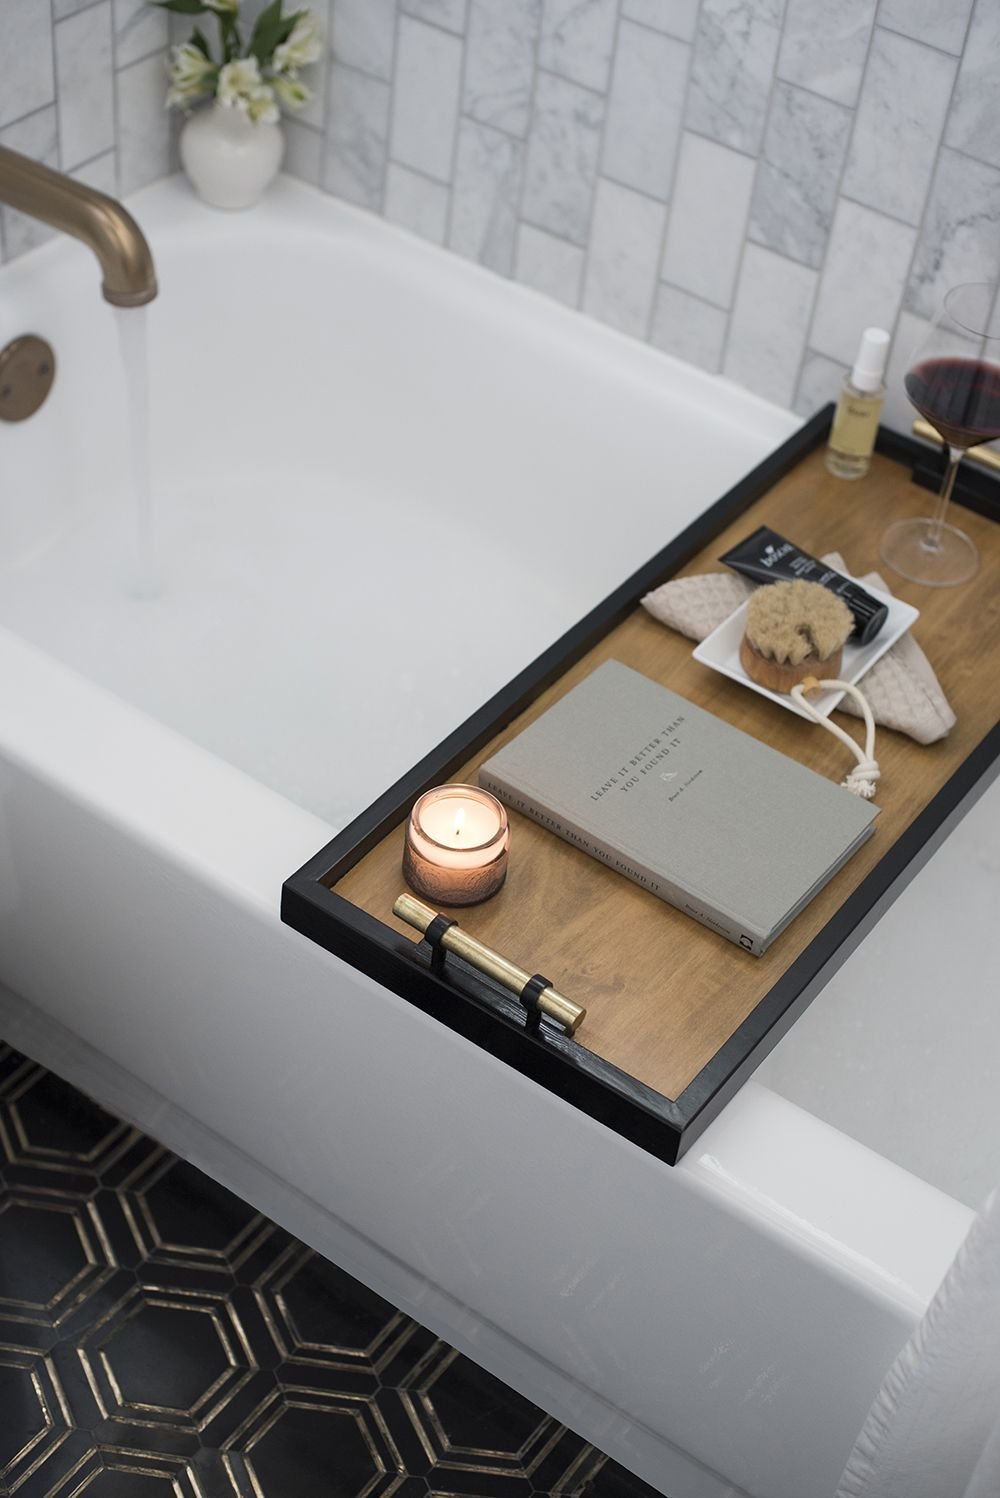 DIY Bath Caddy Tray - roomfortuesday.com | Finest Selection On Home ...